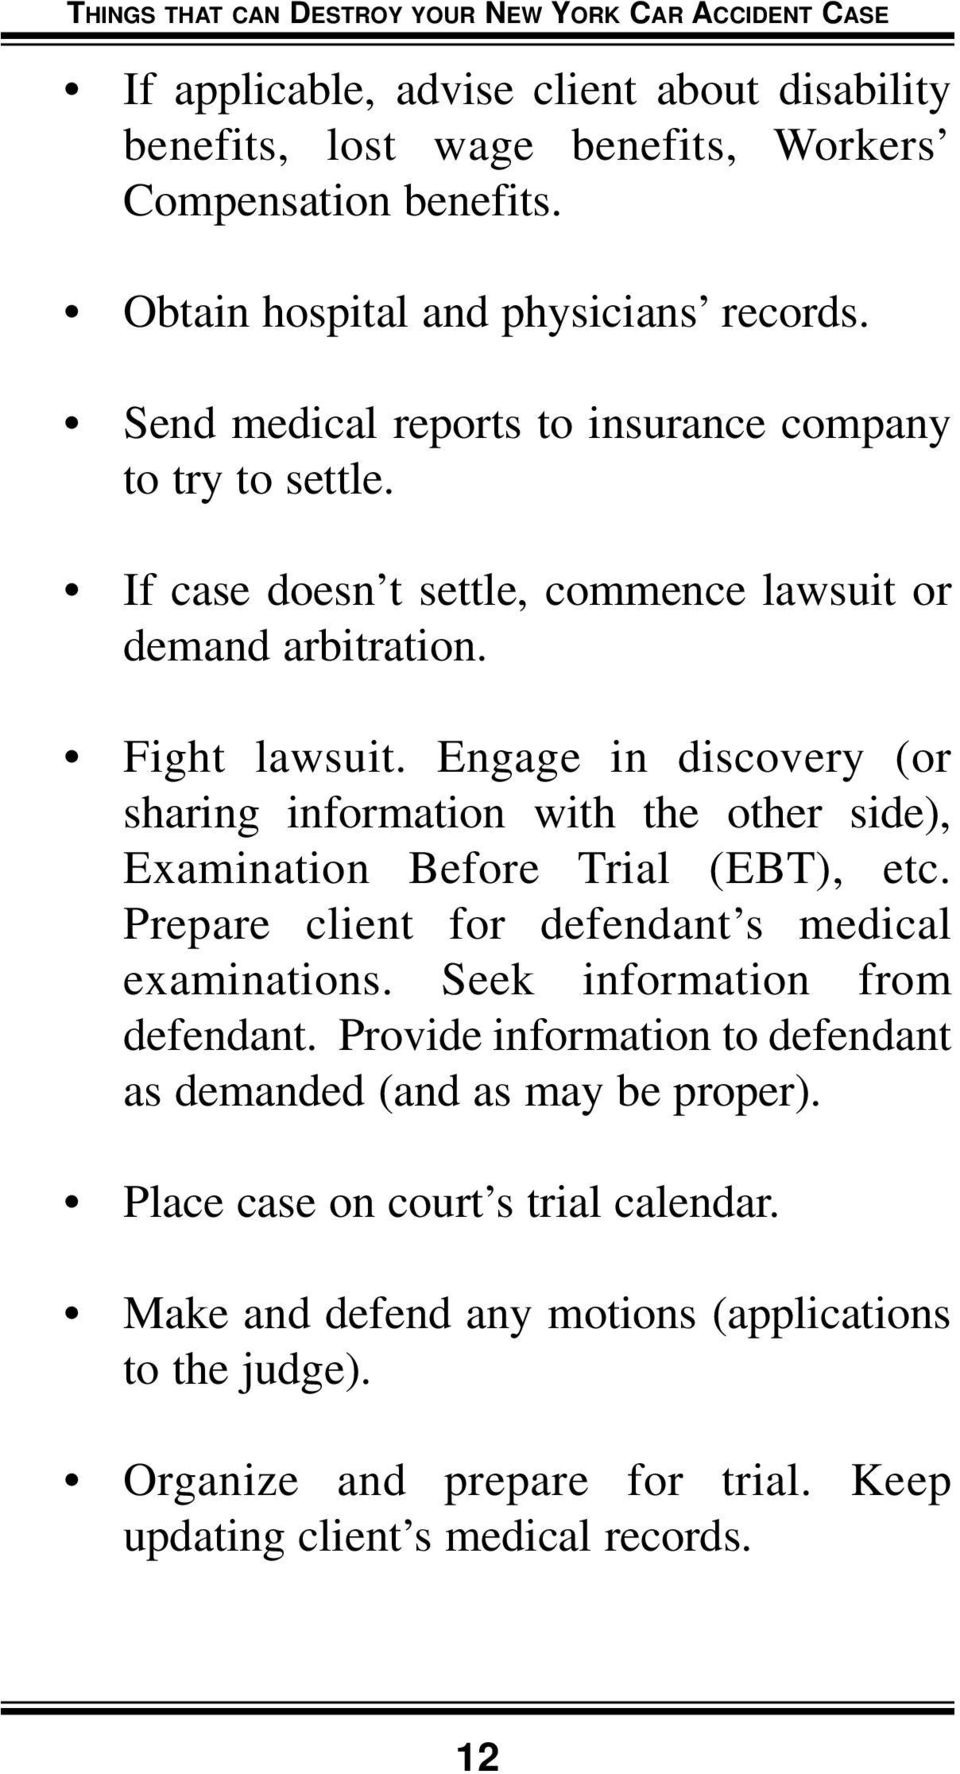 WARNING! Things That Can Destroy Your New York Car Accident Case - PDF